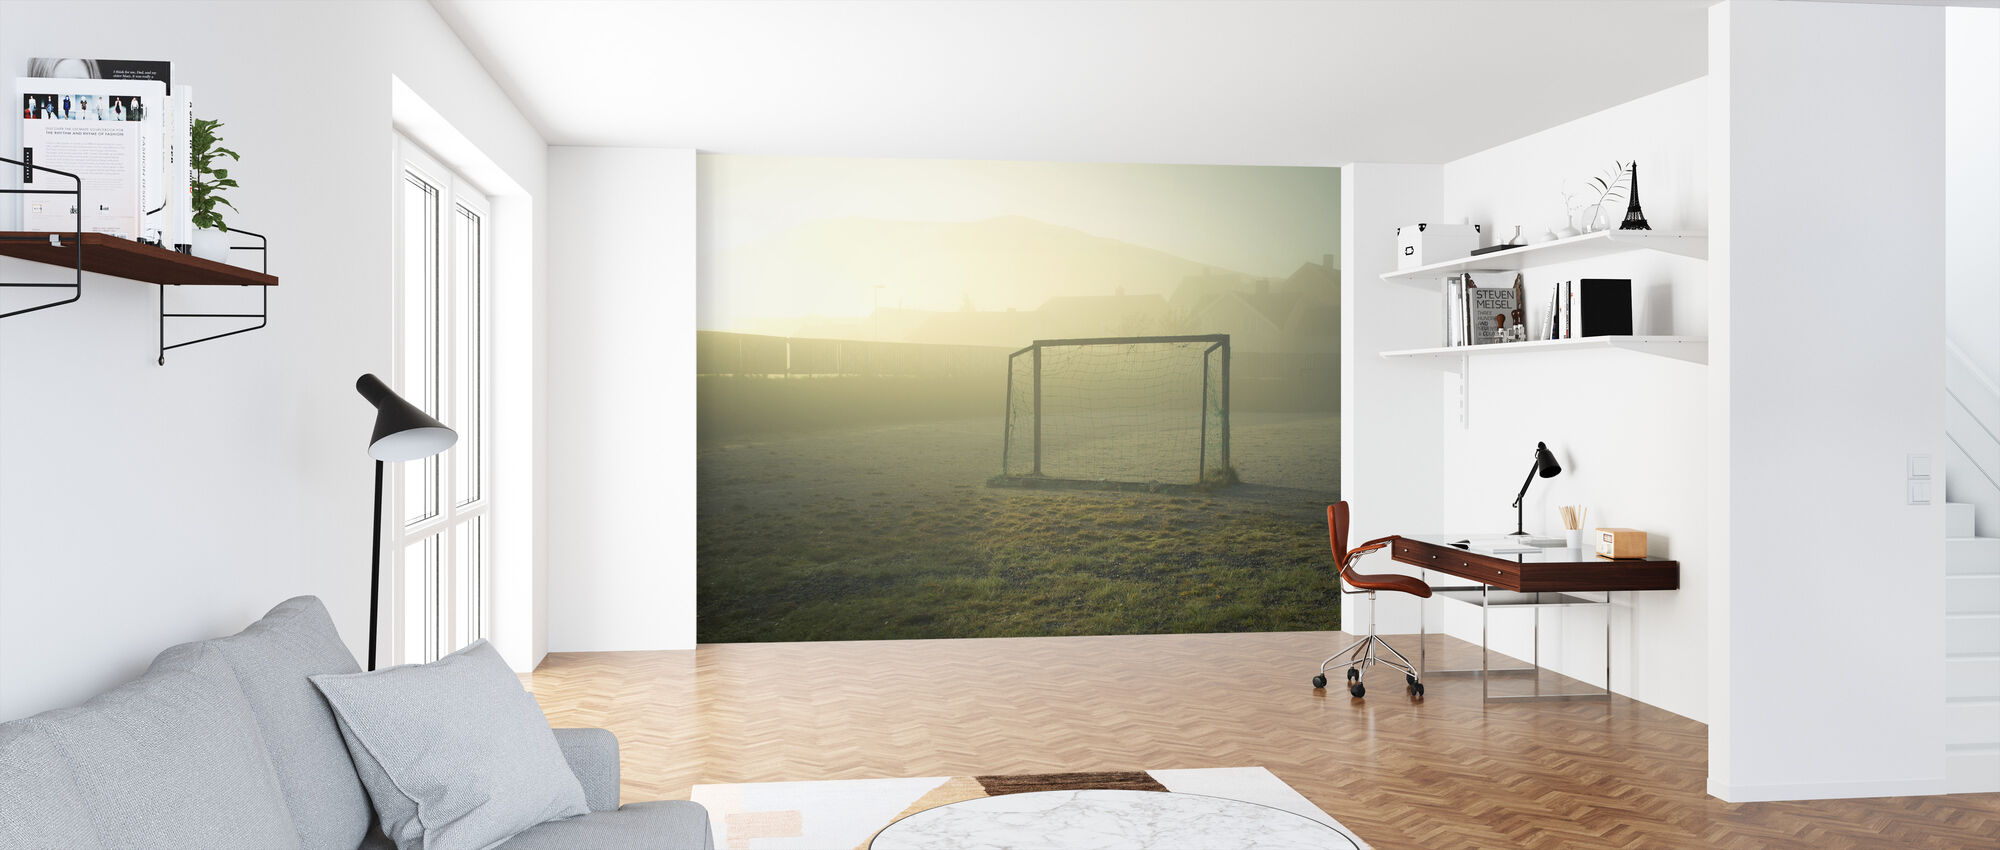 Soccer Field in Sunlight - Wallpaper - Office